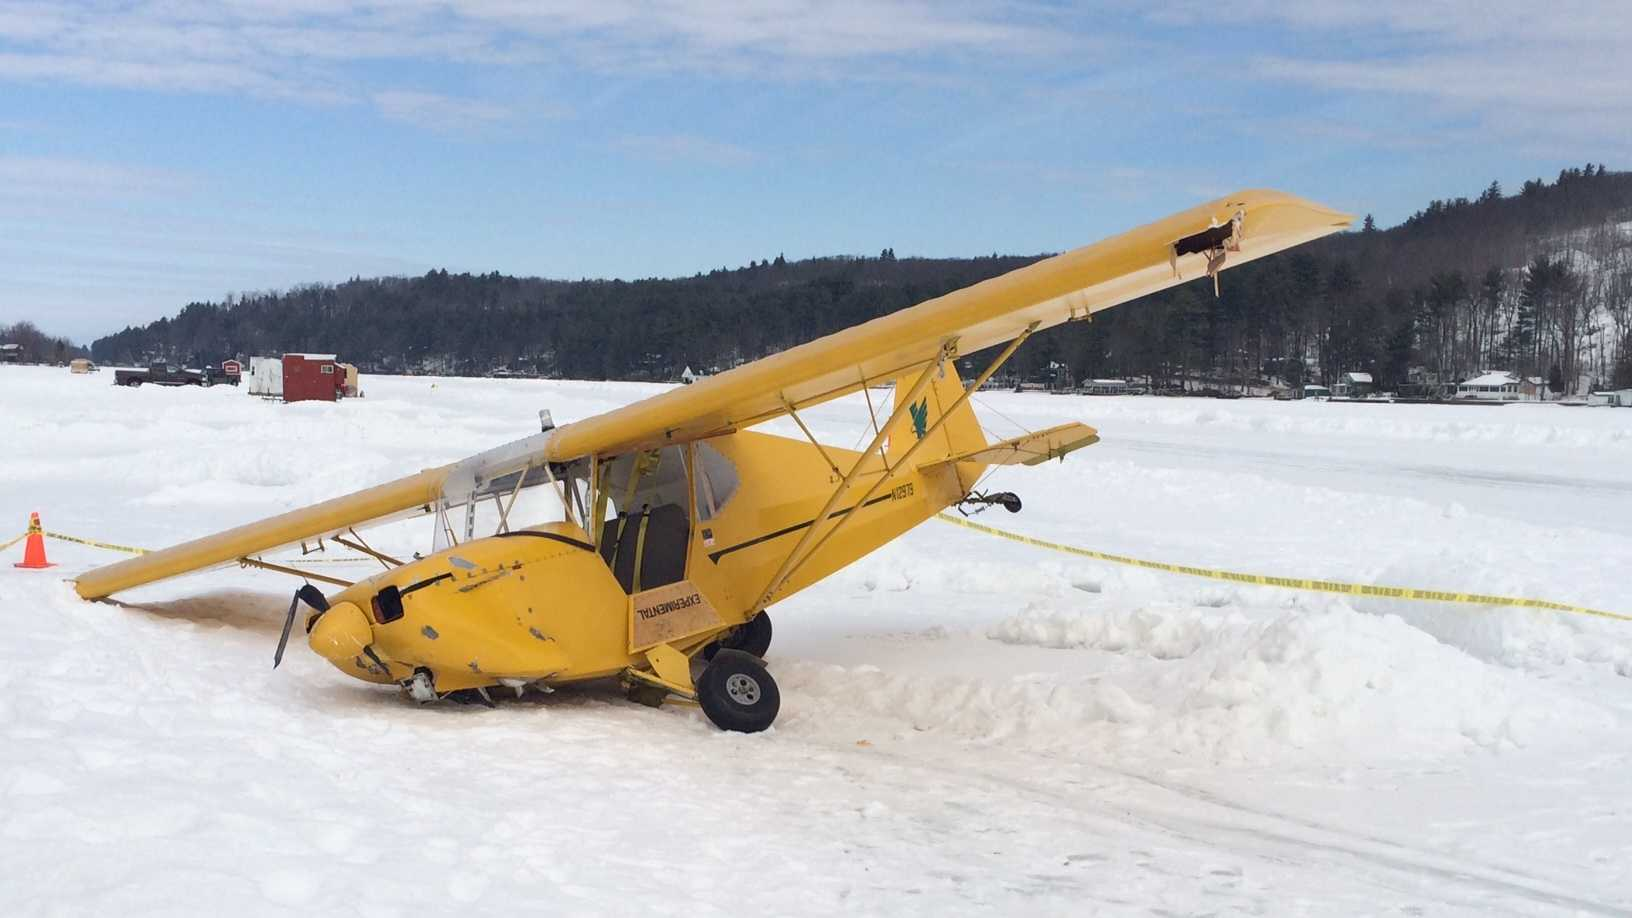 A single-engine experimental plane crashed while coming in for a landing on an ice runway in Alton Bay on Saturday morning. For our full story, click here.